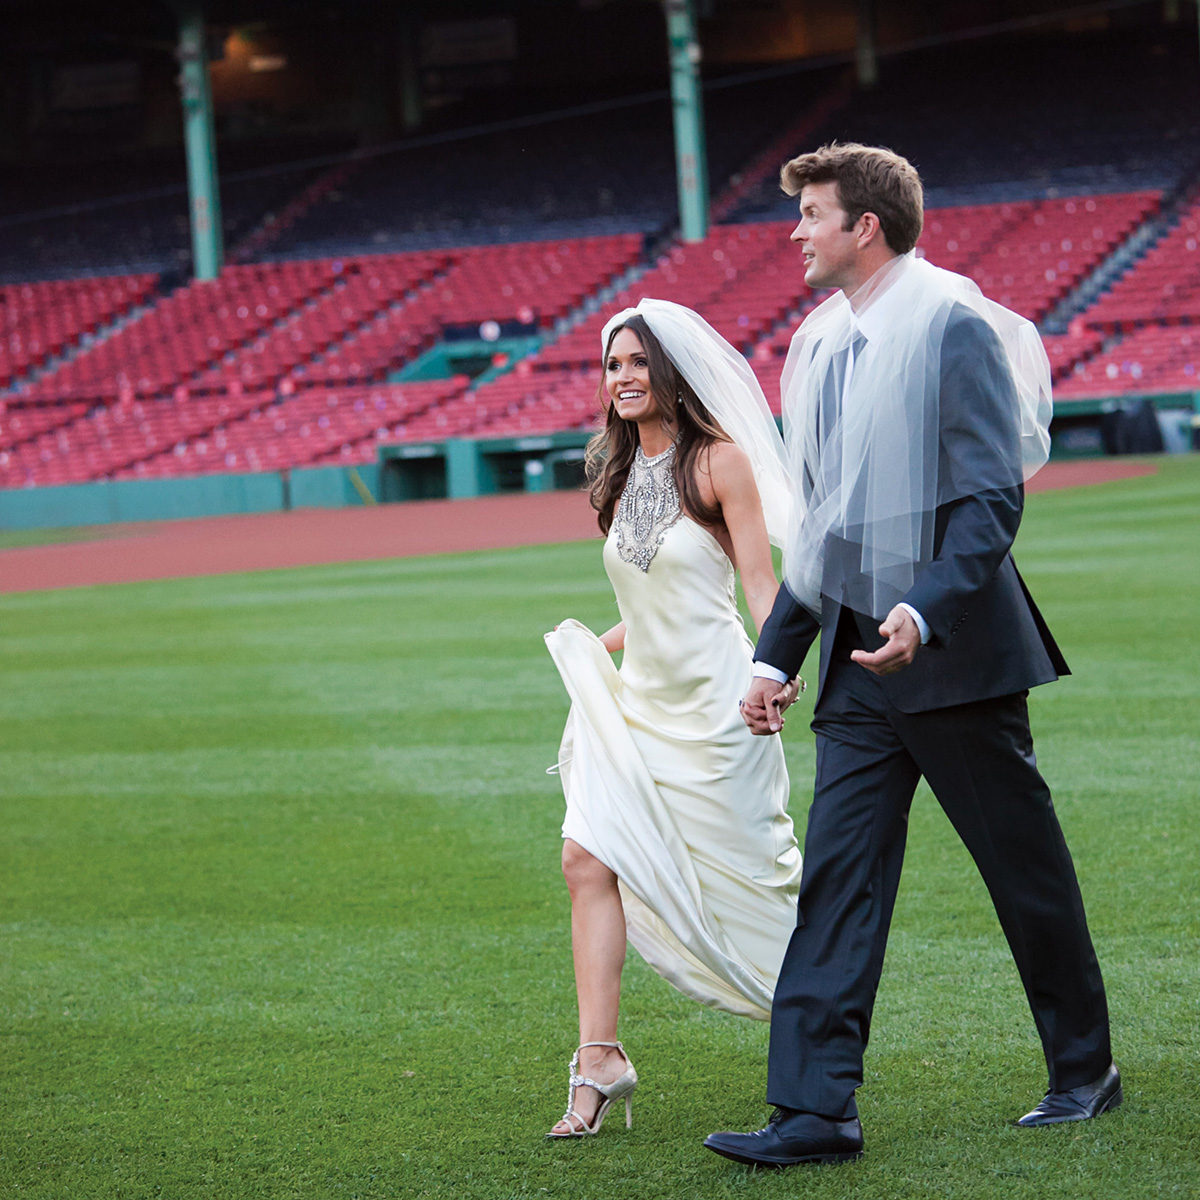 Johnny Lonborg Vanessa Macedo Wedding Fenway Park